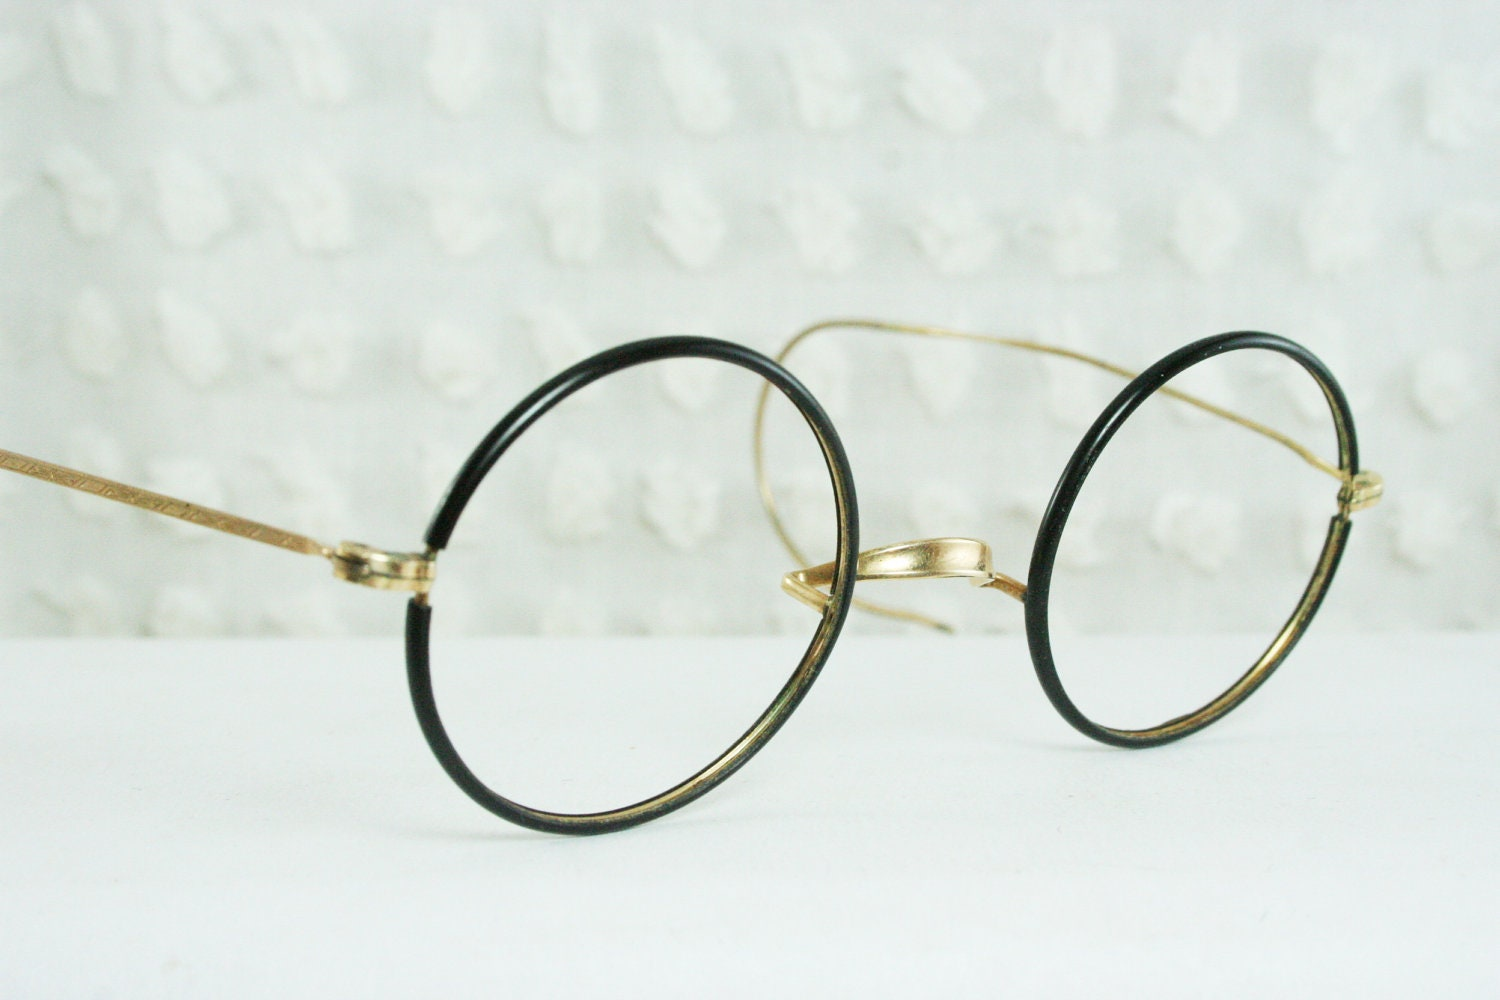 30s glasses 1920 s eyeglasses black circle by diaeyewear